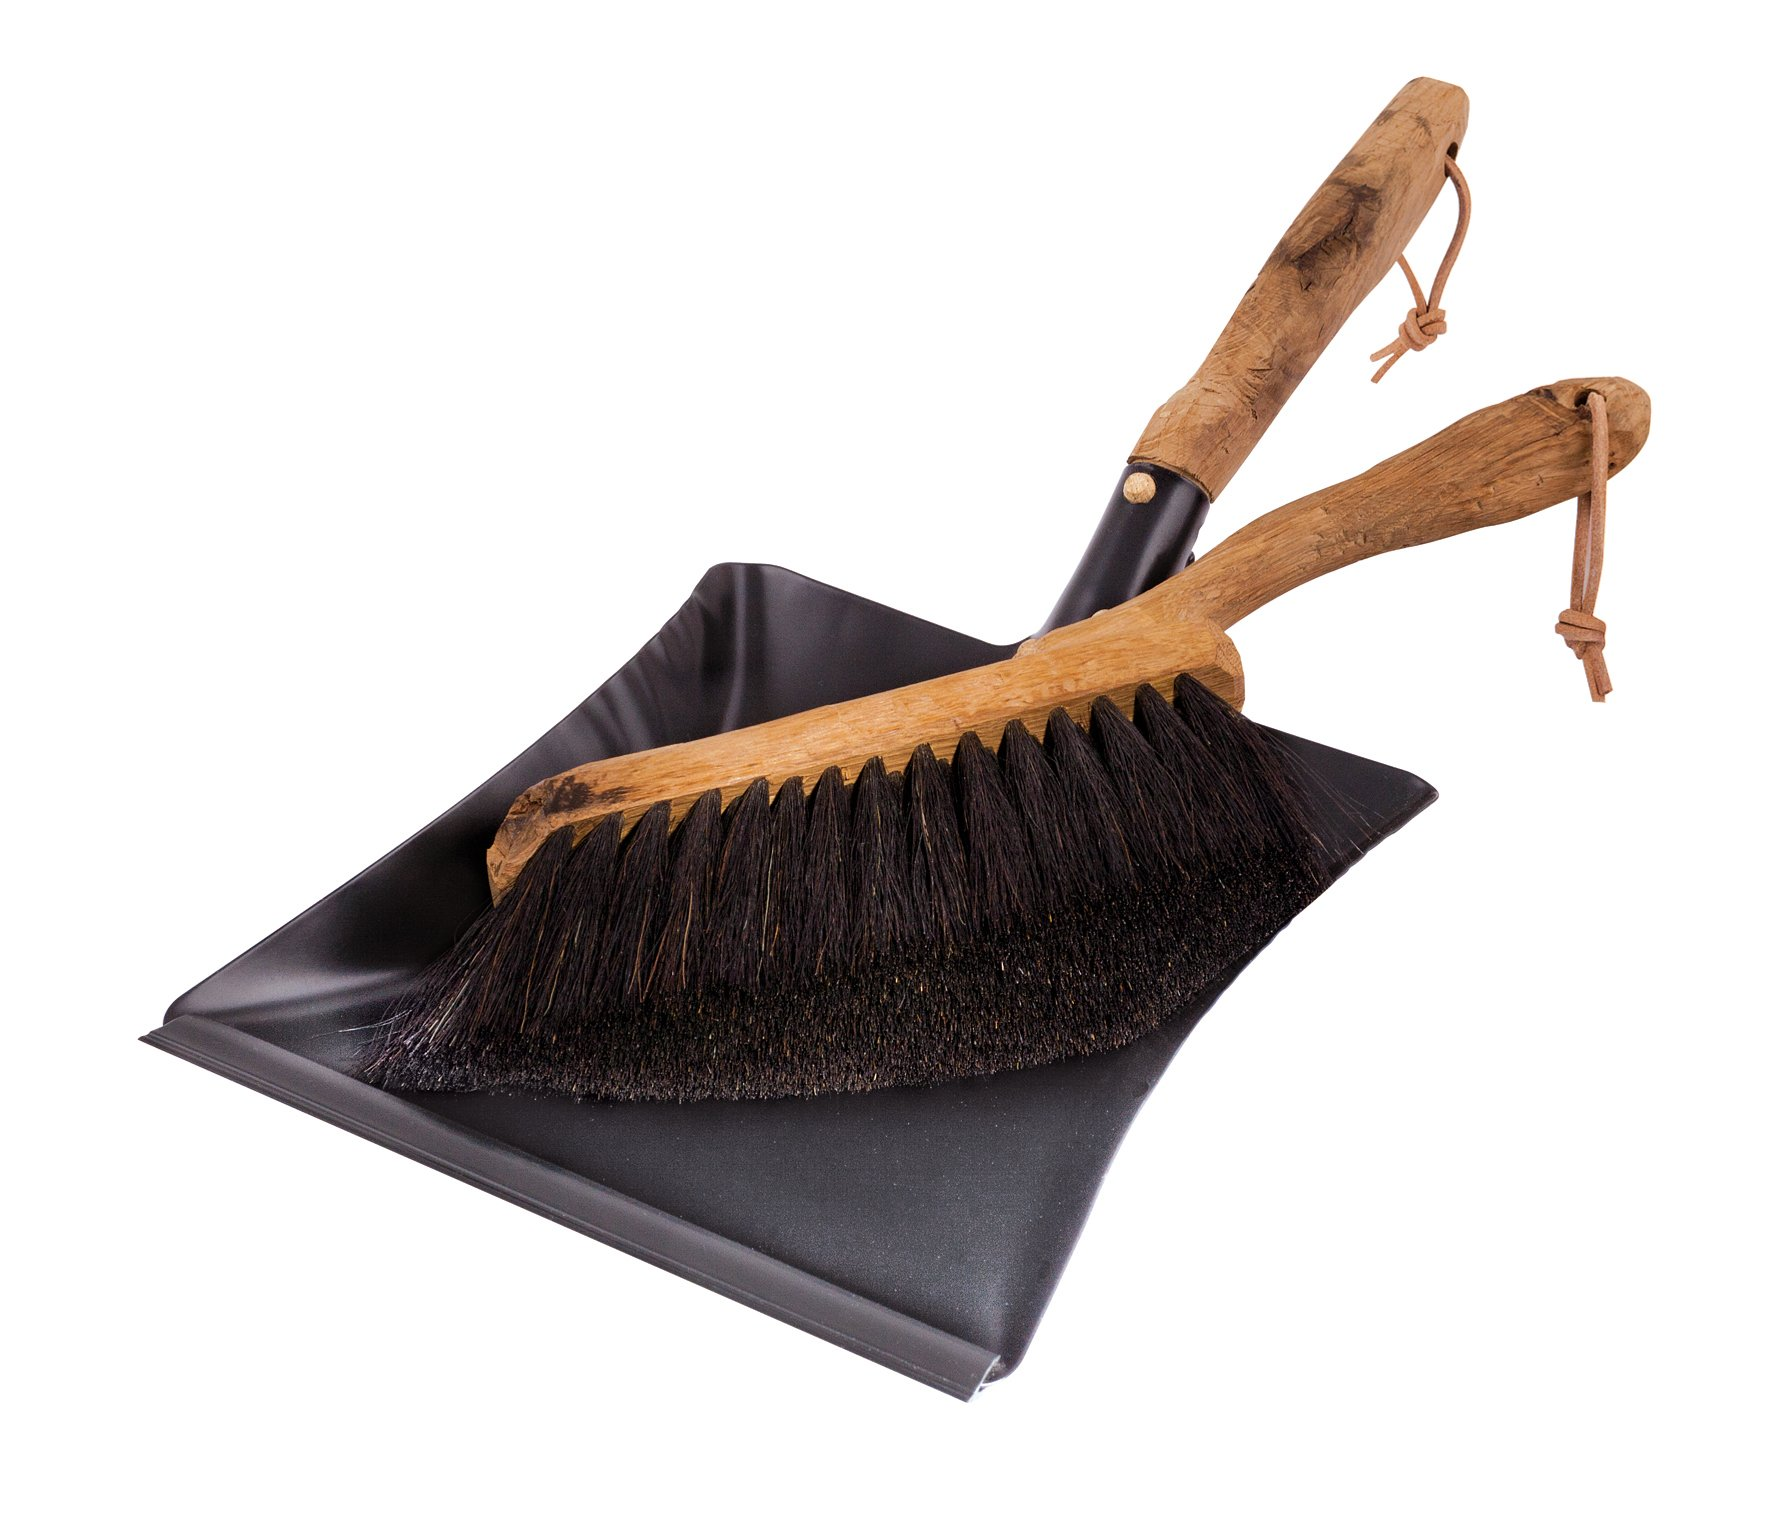 Bürstenhaus Redecker Vintage Line Horsehair Hand Brush and Dust Pan Set, 17-3/4-Inches by REDECKER